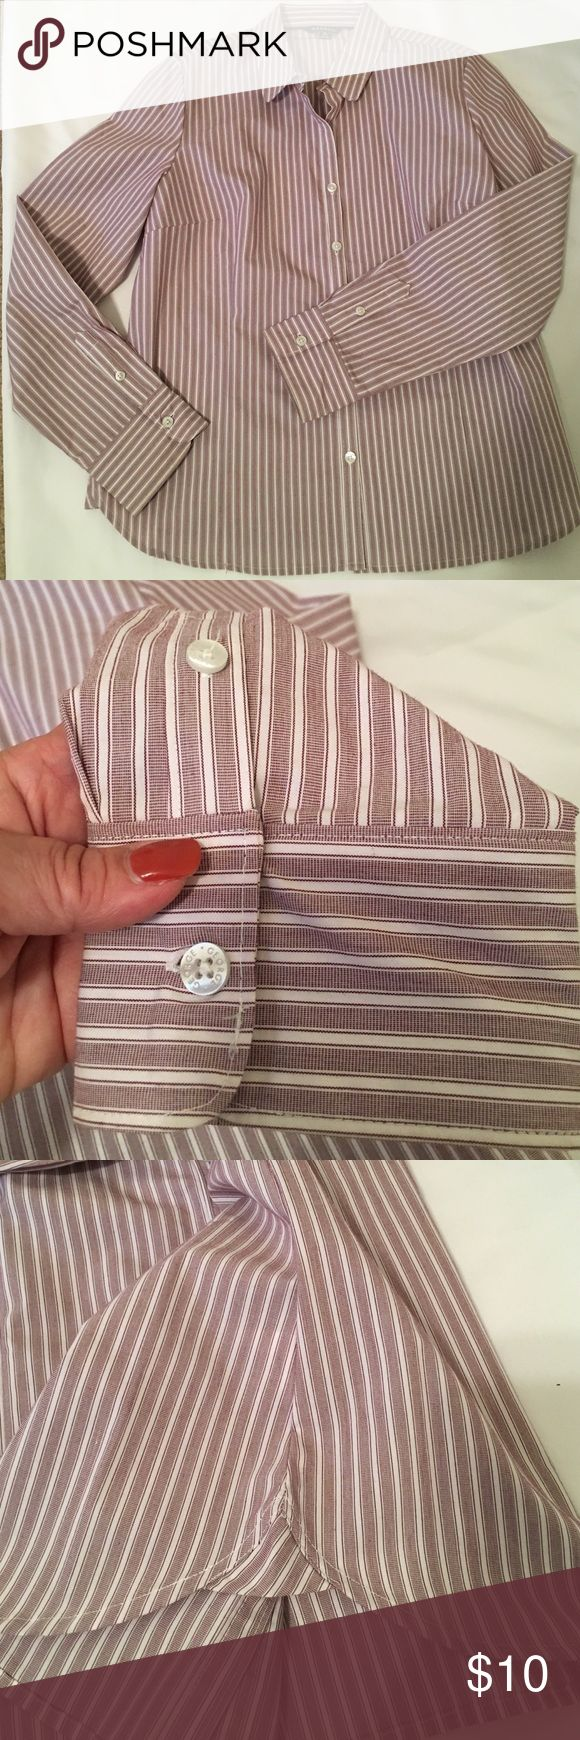 Lady's Classic pin striped shirt. Work or fun! Classic striped ladies shirt. Great for the office layered under a blazer or cardigan with dress pants or skirt. Or top it with a Jean jacket and scarf for apple picking in the fall. The color has a feminine touch. Shirt tail hem. Size is XL for 12-14. Like brand new. Low priced garments of $14 or less are fair and firm. Thank You.😊 Tops Button Down Shirts